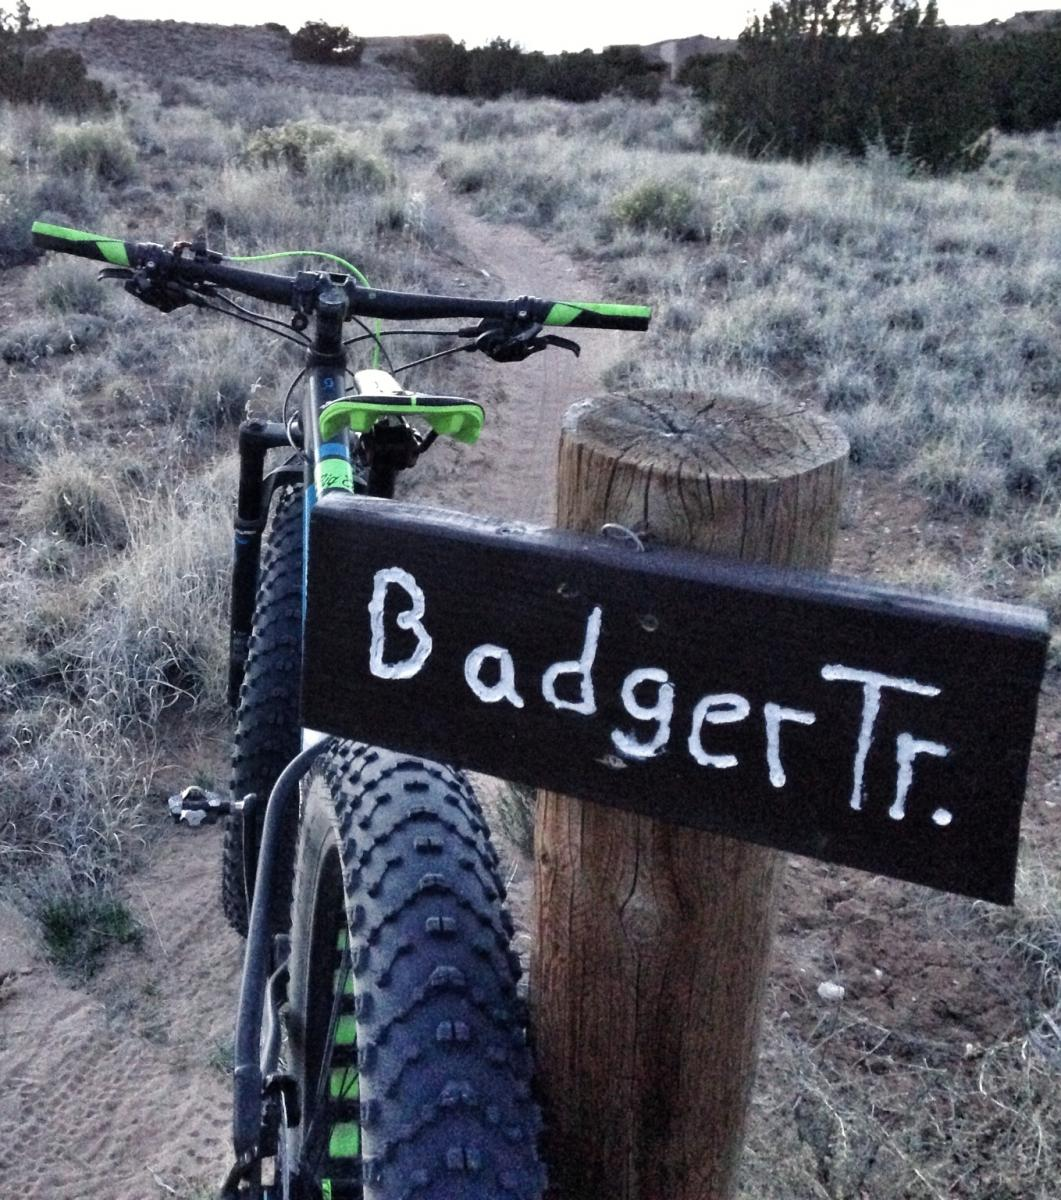 Badger trail